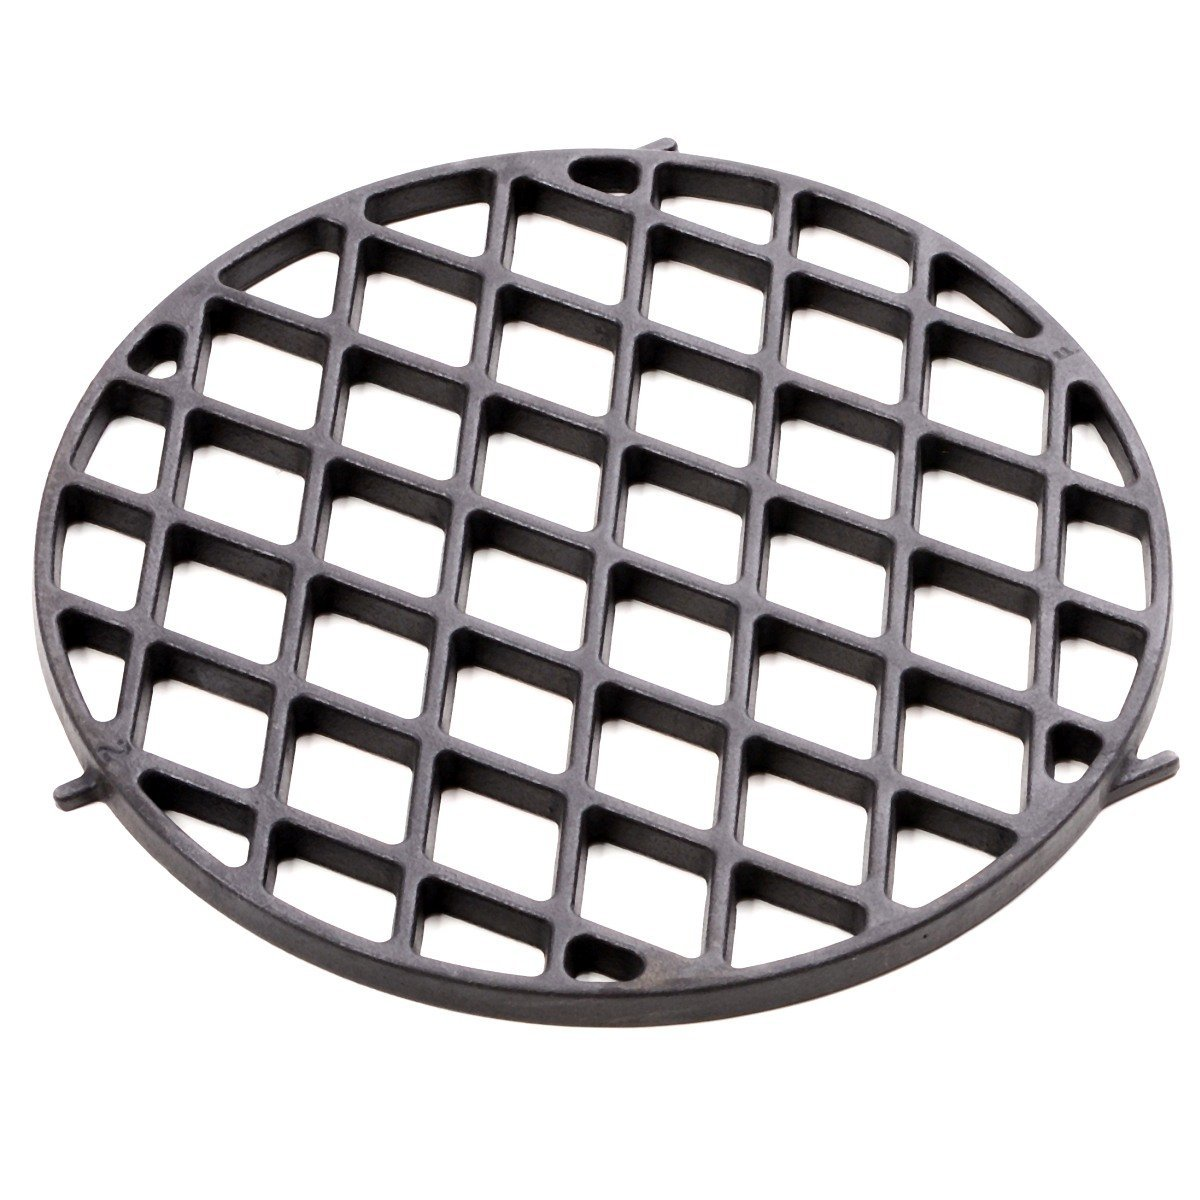 Решетка Sear Grate - Gourmet BBQ System